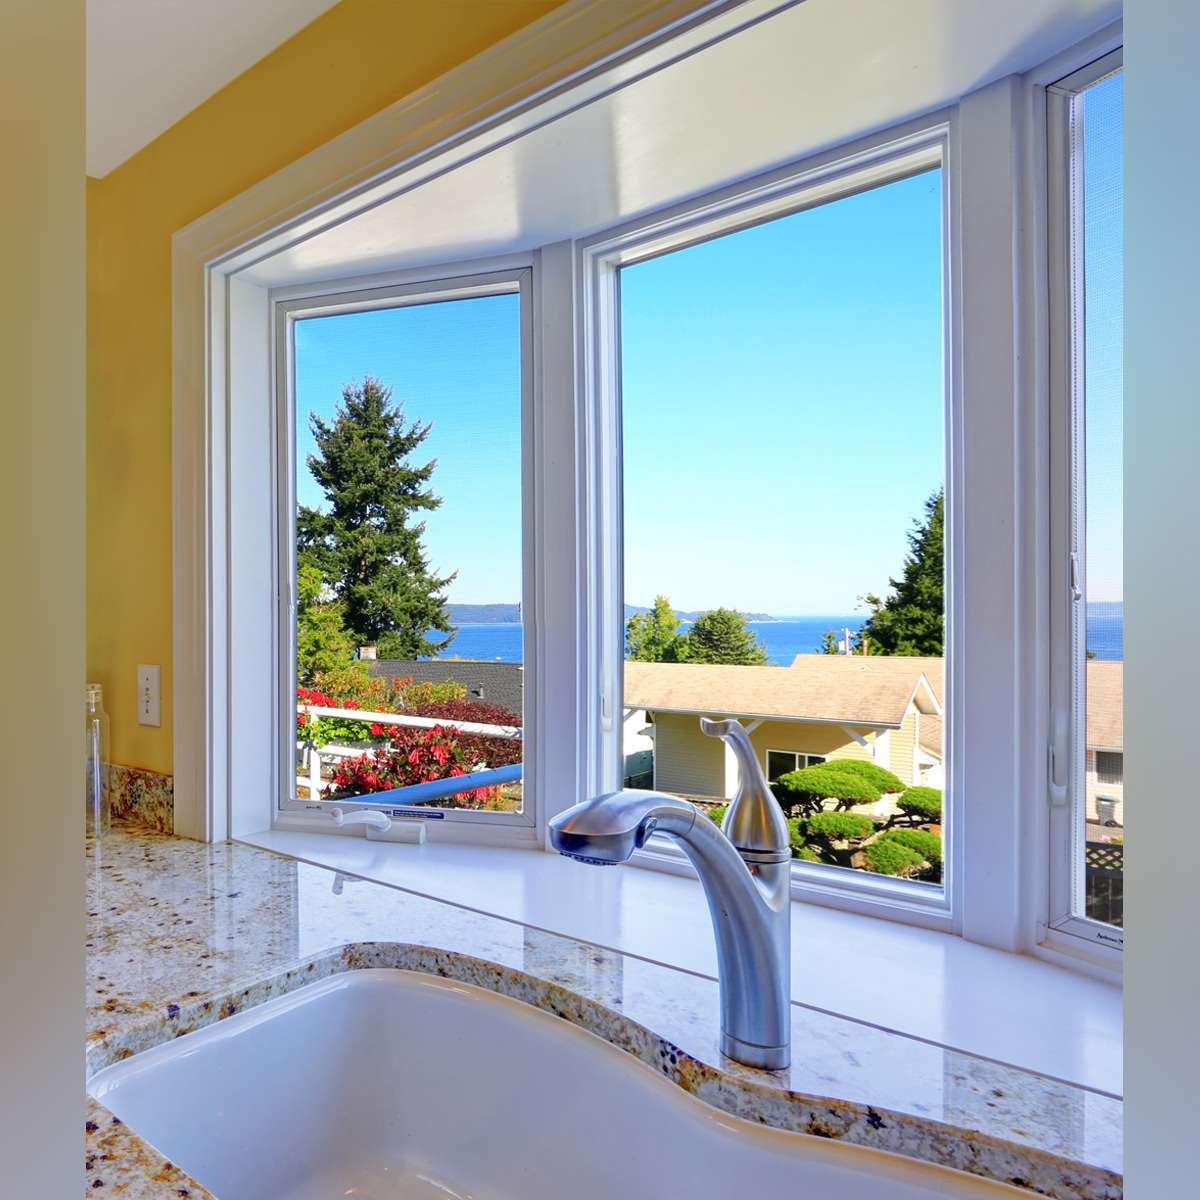 White sliding window on a yellow kitchen wall, with a backyard view and clear skies.